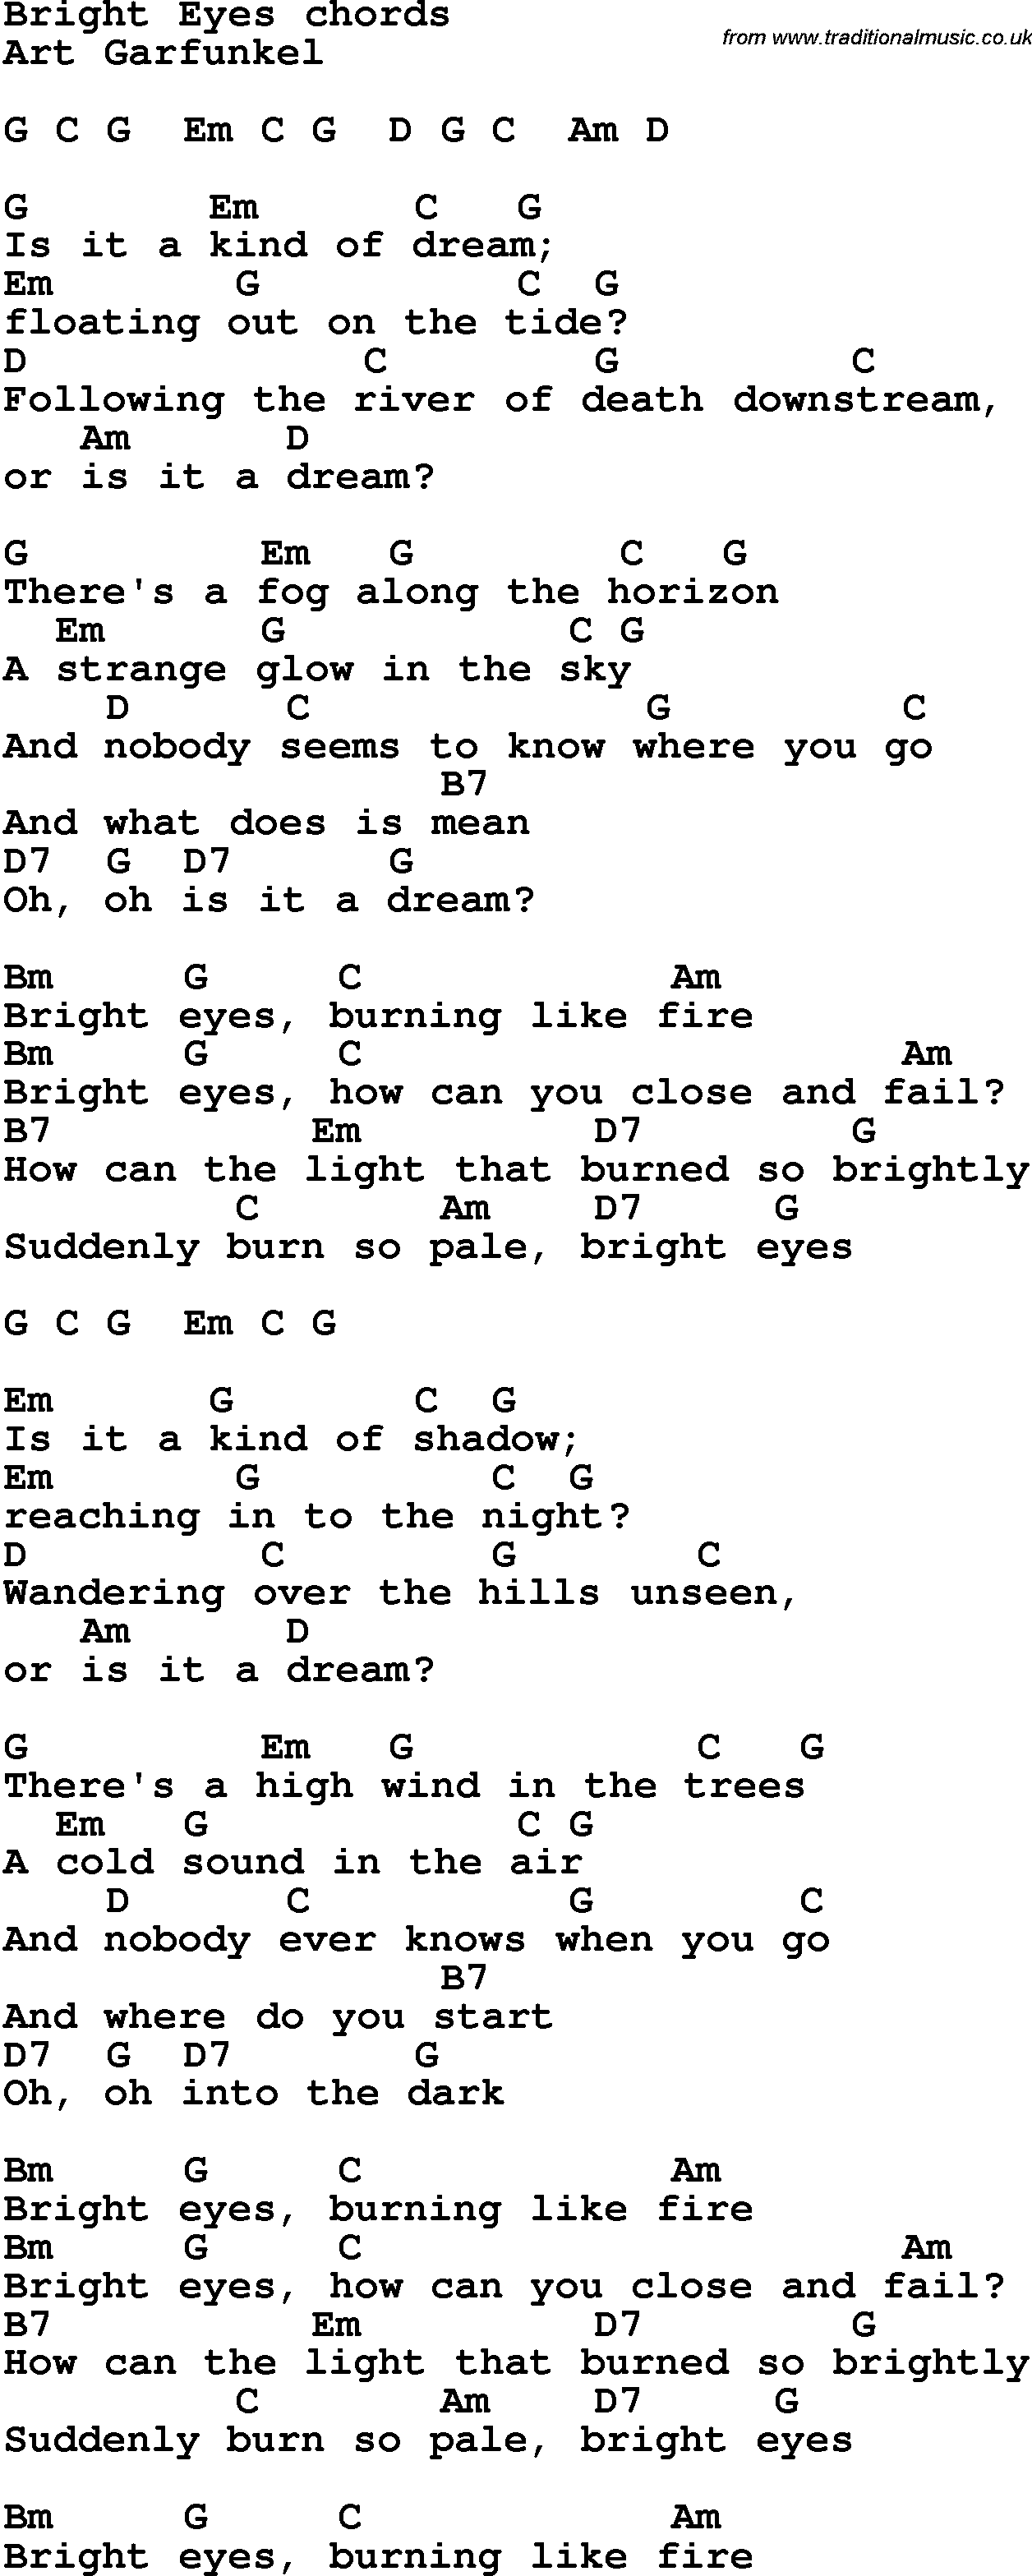 Song Lyrics With Guitar Chords For Bright Eyes